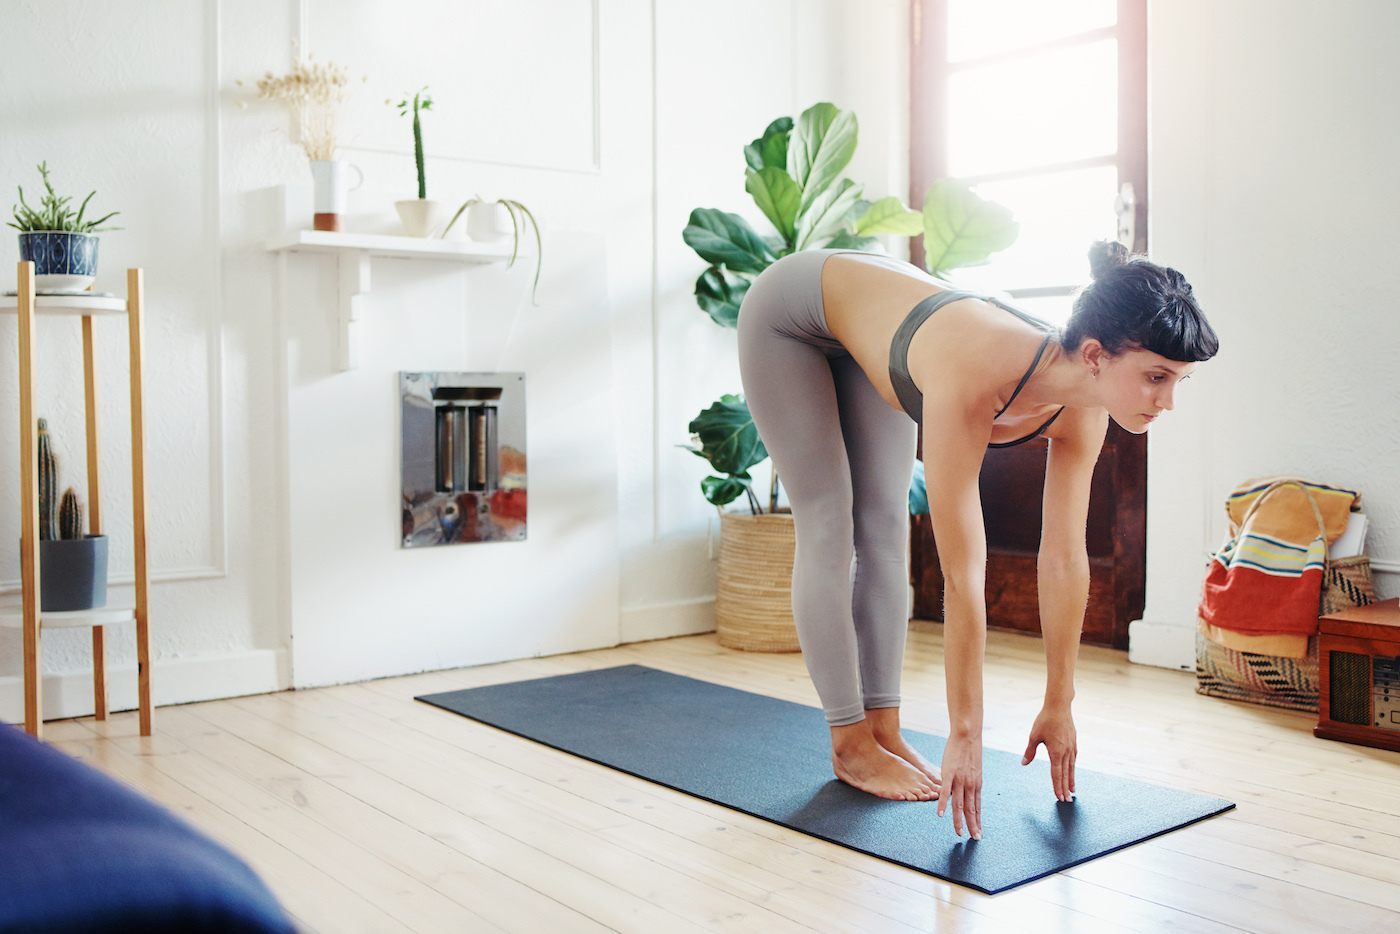 Thumbnail for Having trouble focusing? Start your day with the brain-boosting sun salutation A